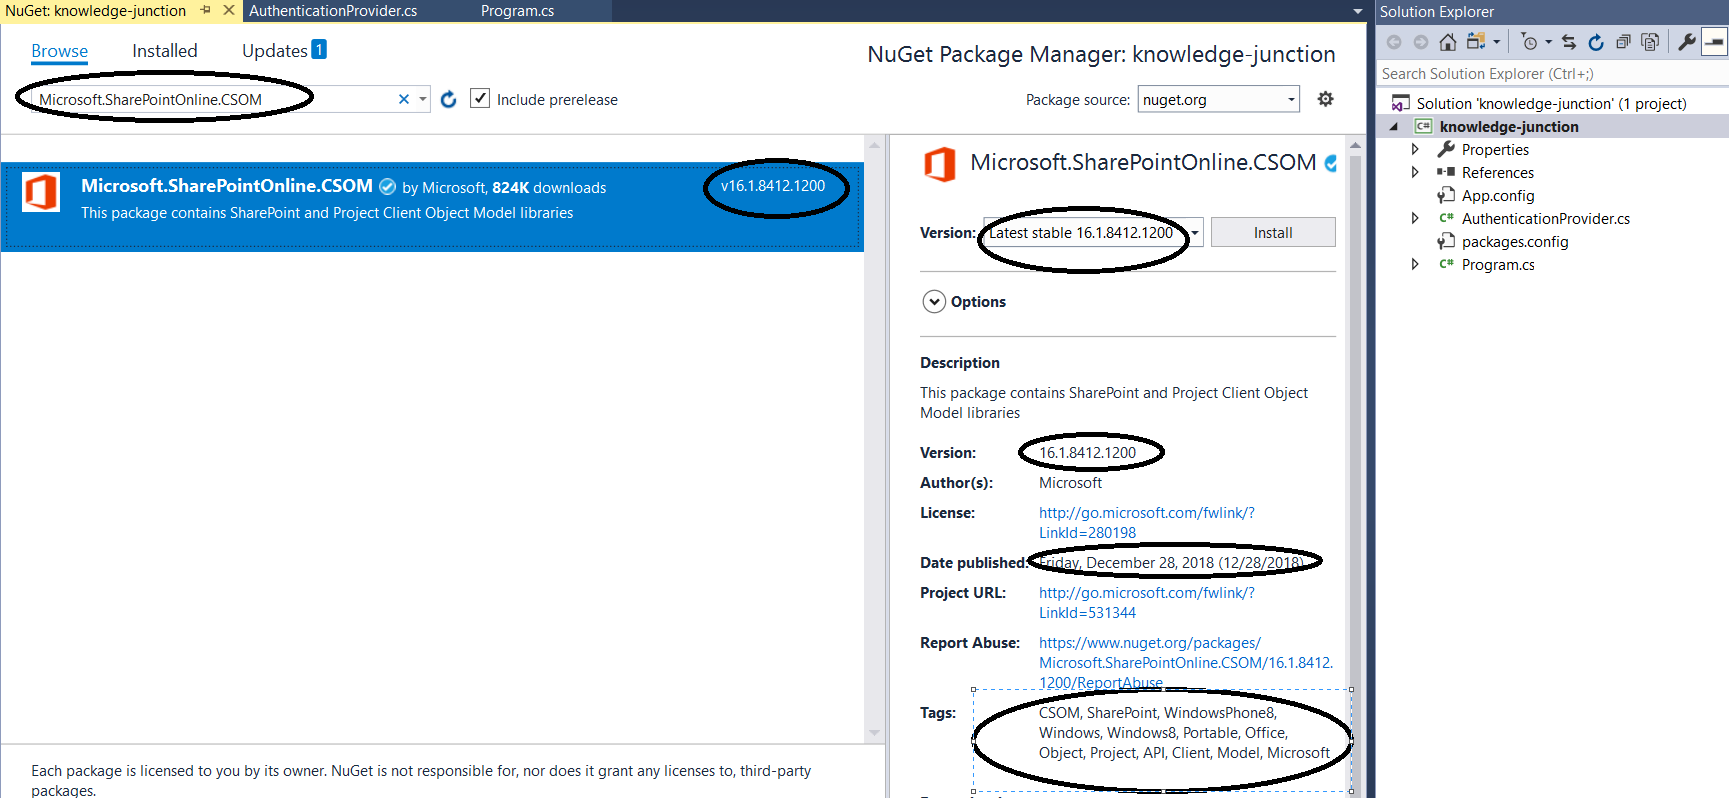 Office 365 – SharePoint Online / Project Online: New version of CSOM package - 16.1.8412.1200